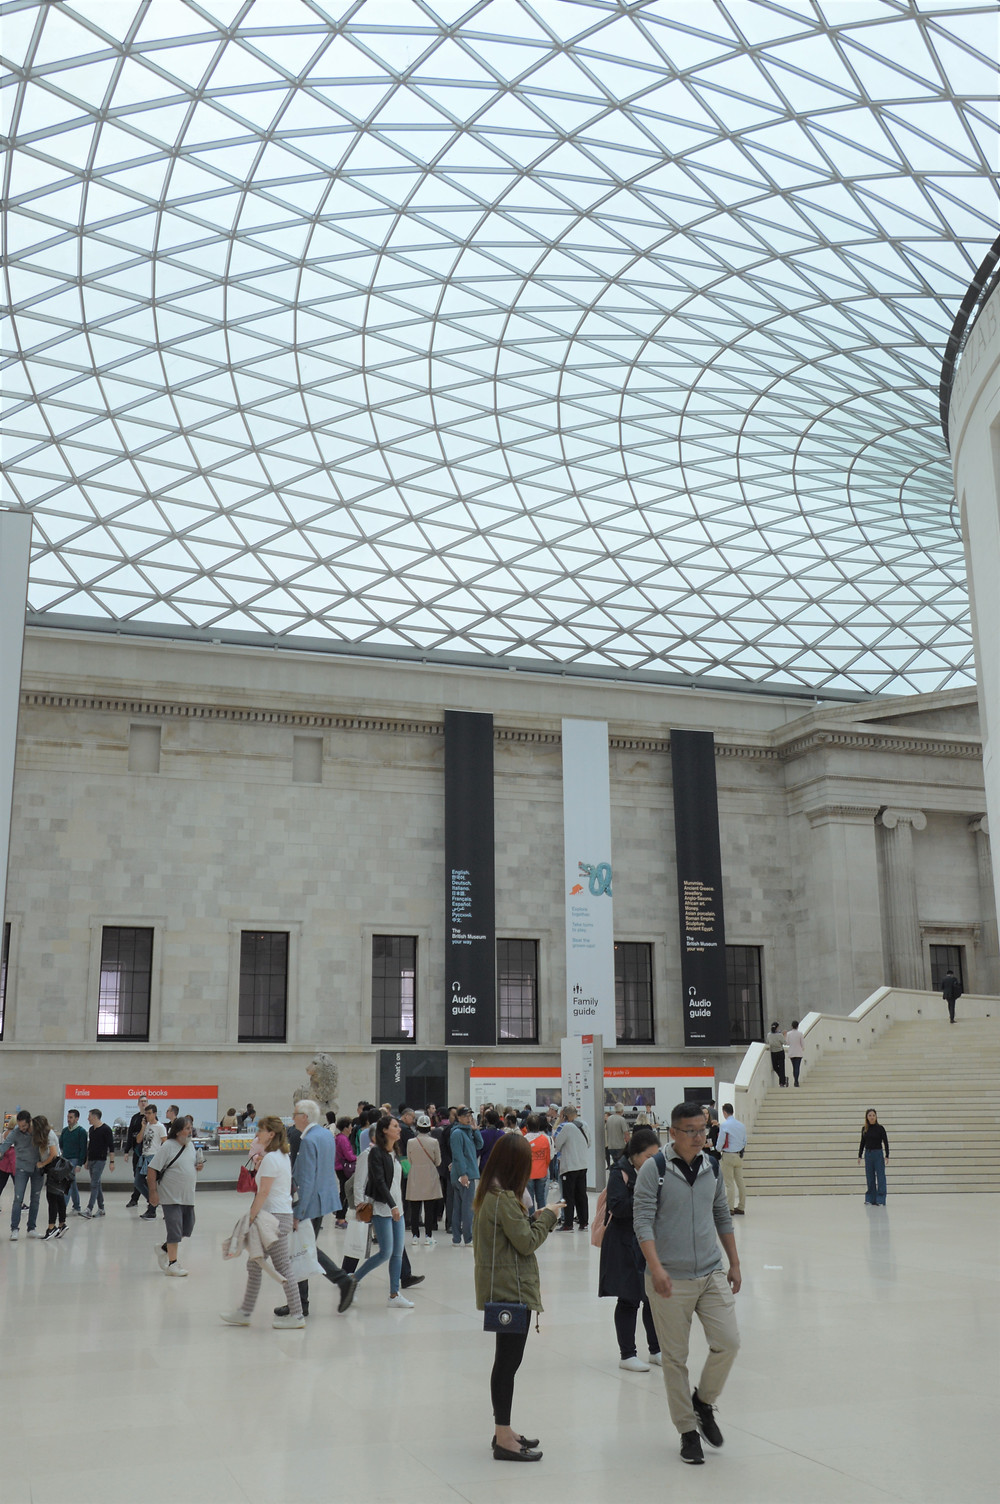 Queen Elizabeth II Great Court in The British Museum – the largest covered square in Europe